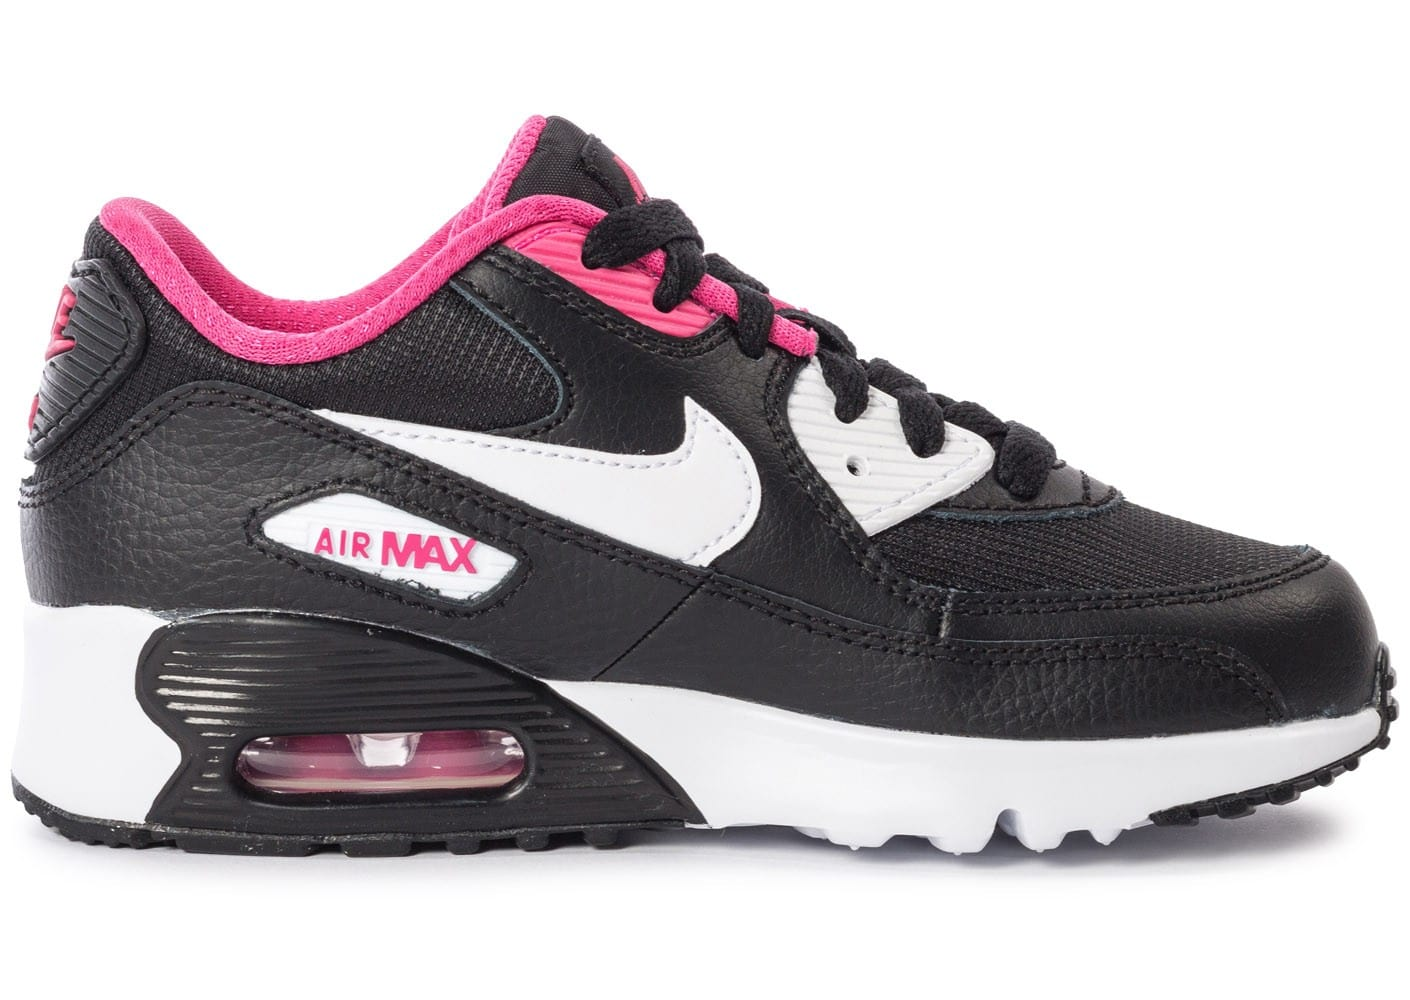 nike air max 90 mesh enfant noir et rose chaussures chaussures chausport. Black Bedroom Furniture Sets. Home Design Ideas